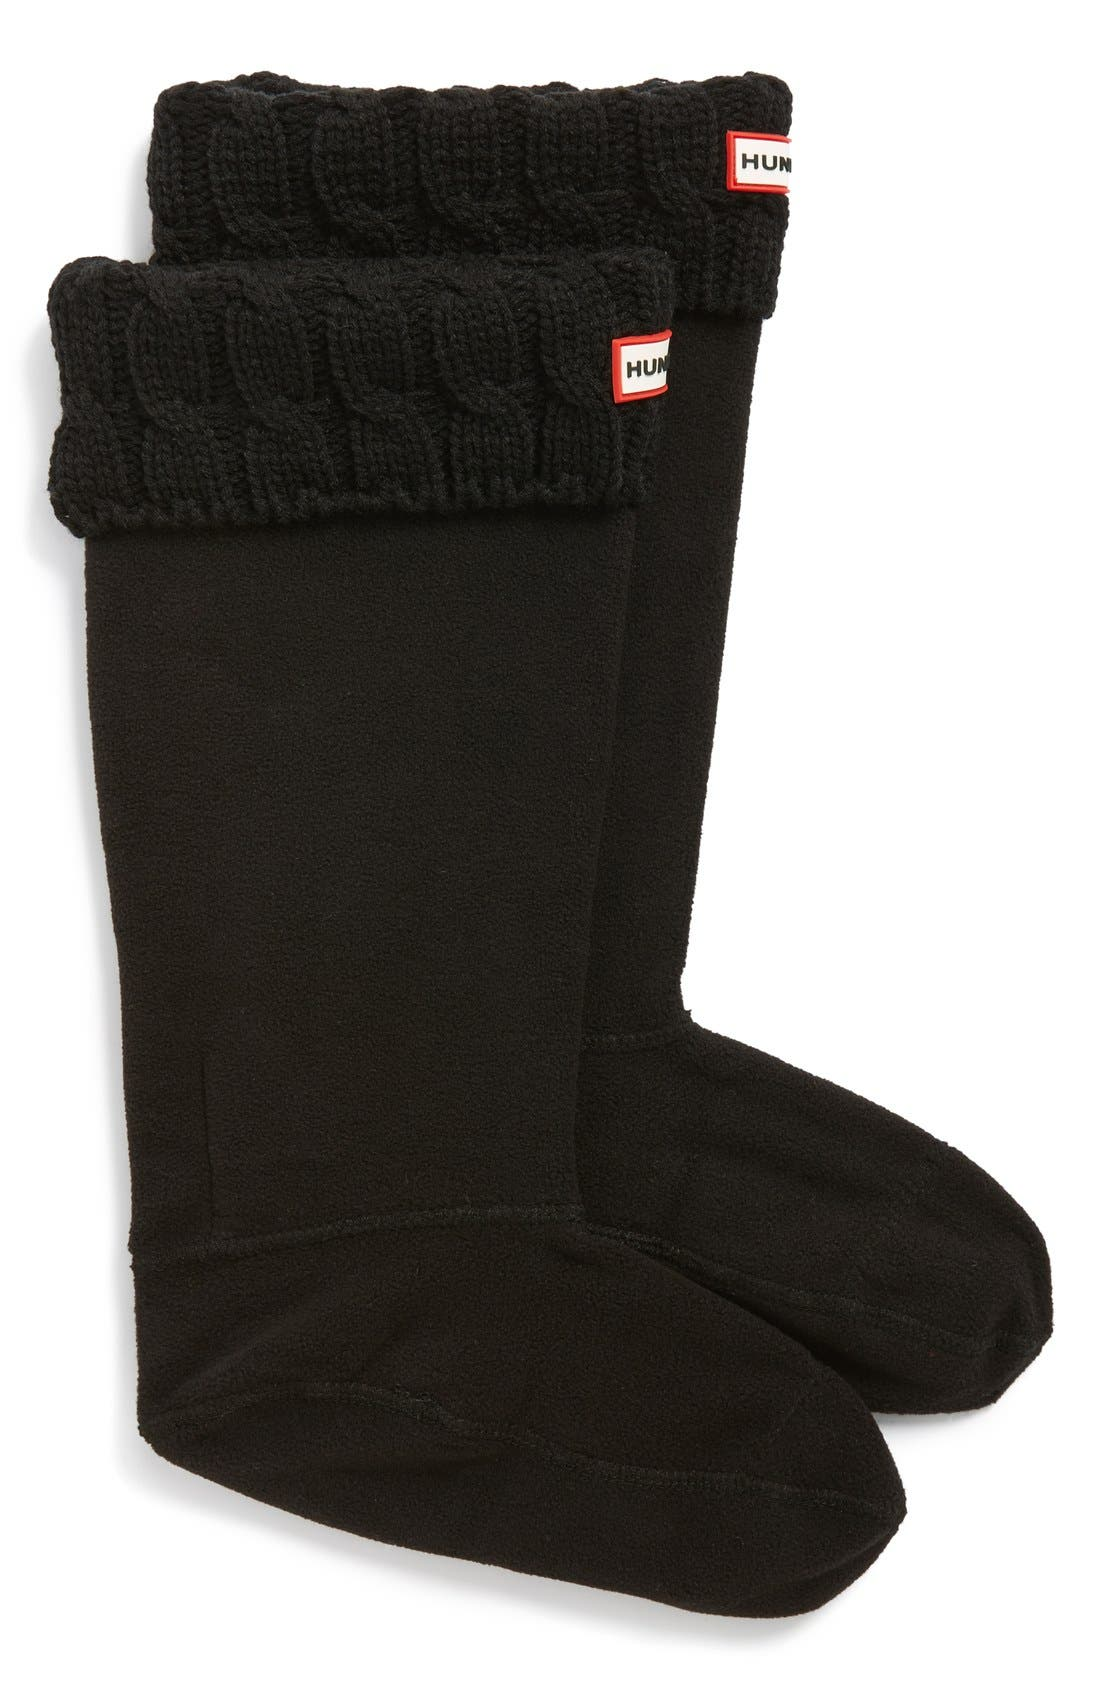 Original Tall Cable Knit Cuff Welly Boot Socks,                             Main thumbnail 1, color,                             BLACK